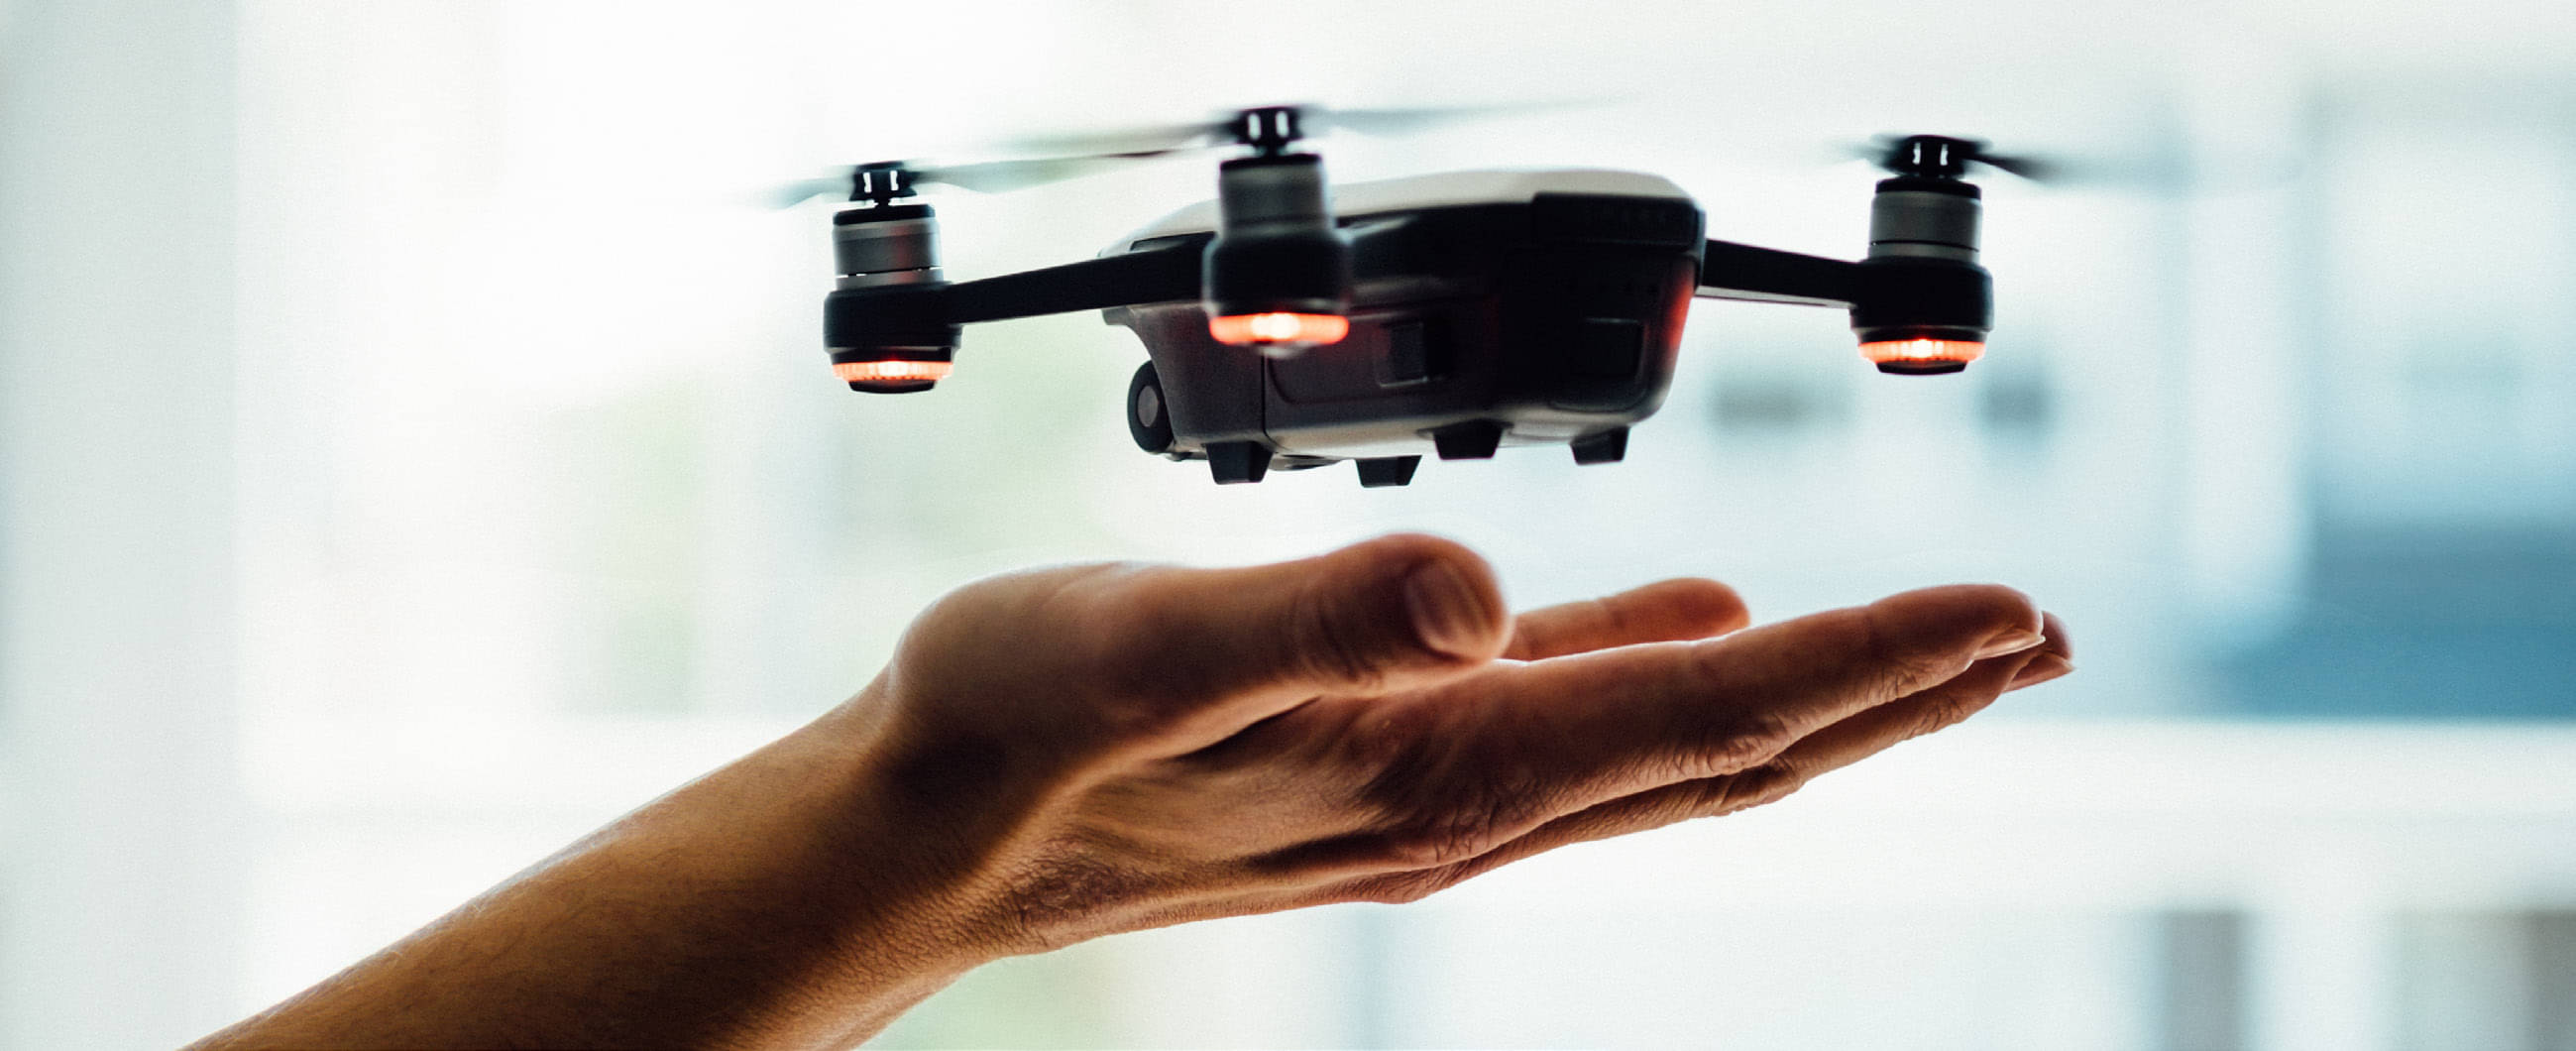 Understanding The Drone Space And Embracing Its Solutions